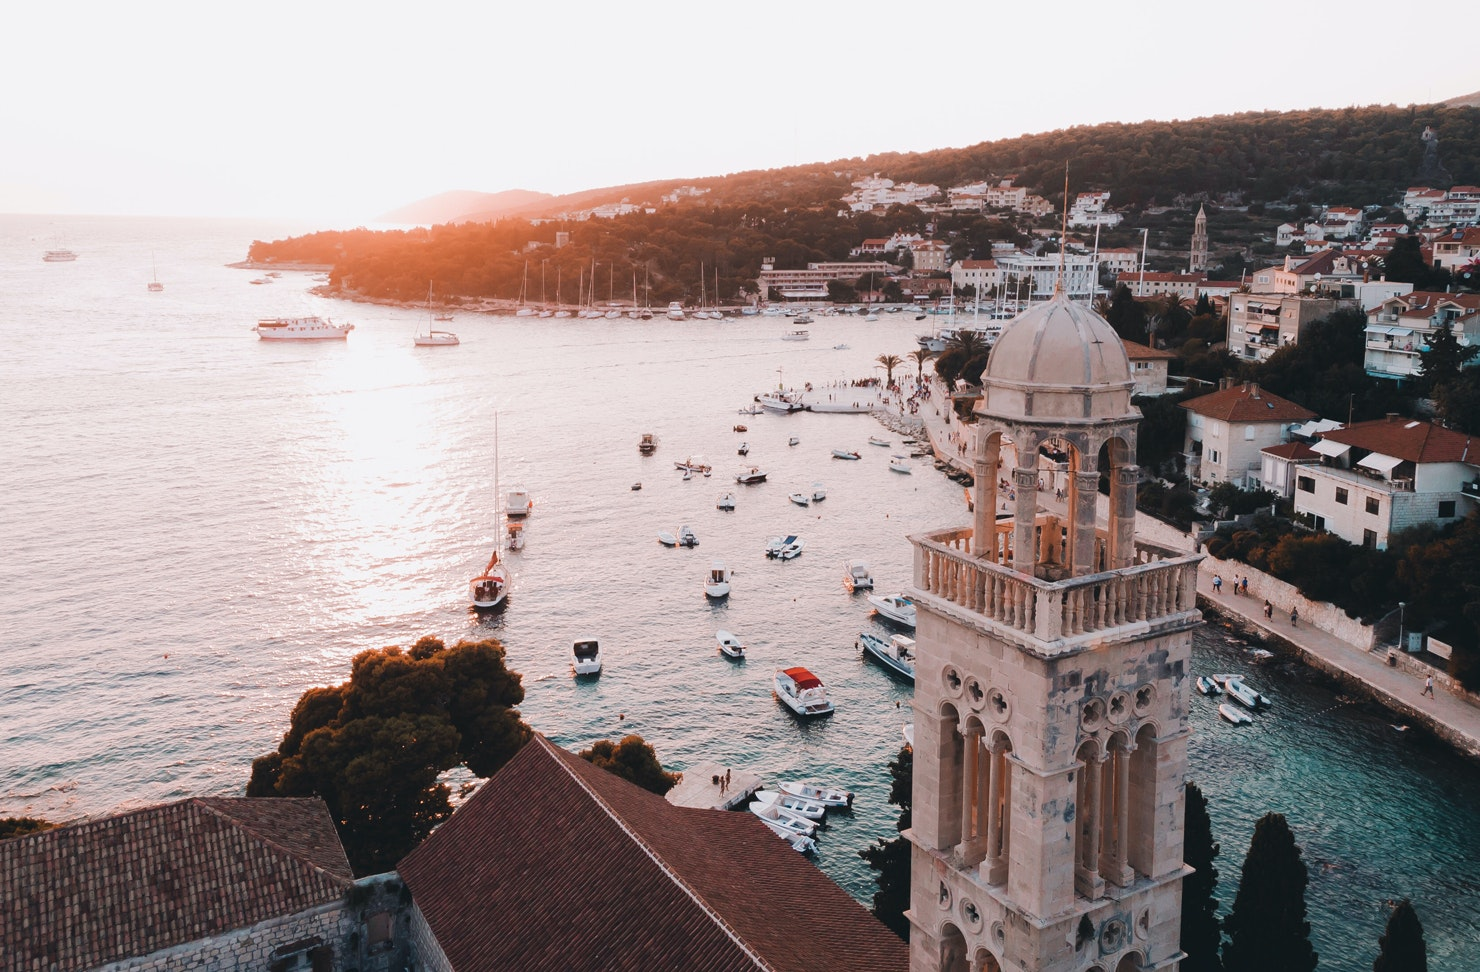 Overlooking a town on Hvar in Croatia, with buildings in the foreground and sailing boats moored in the sea.